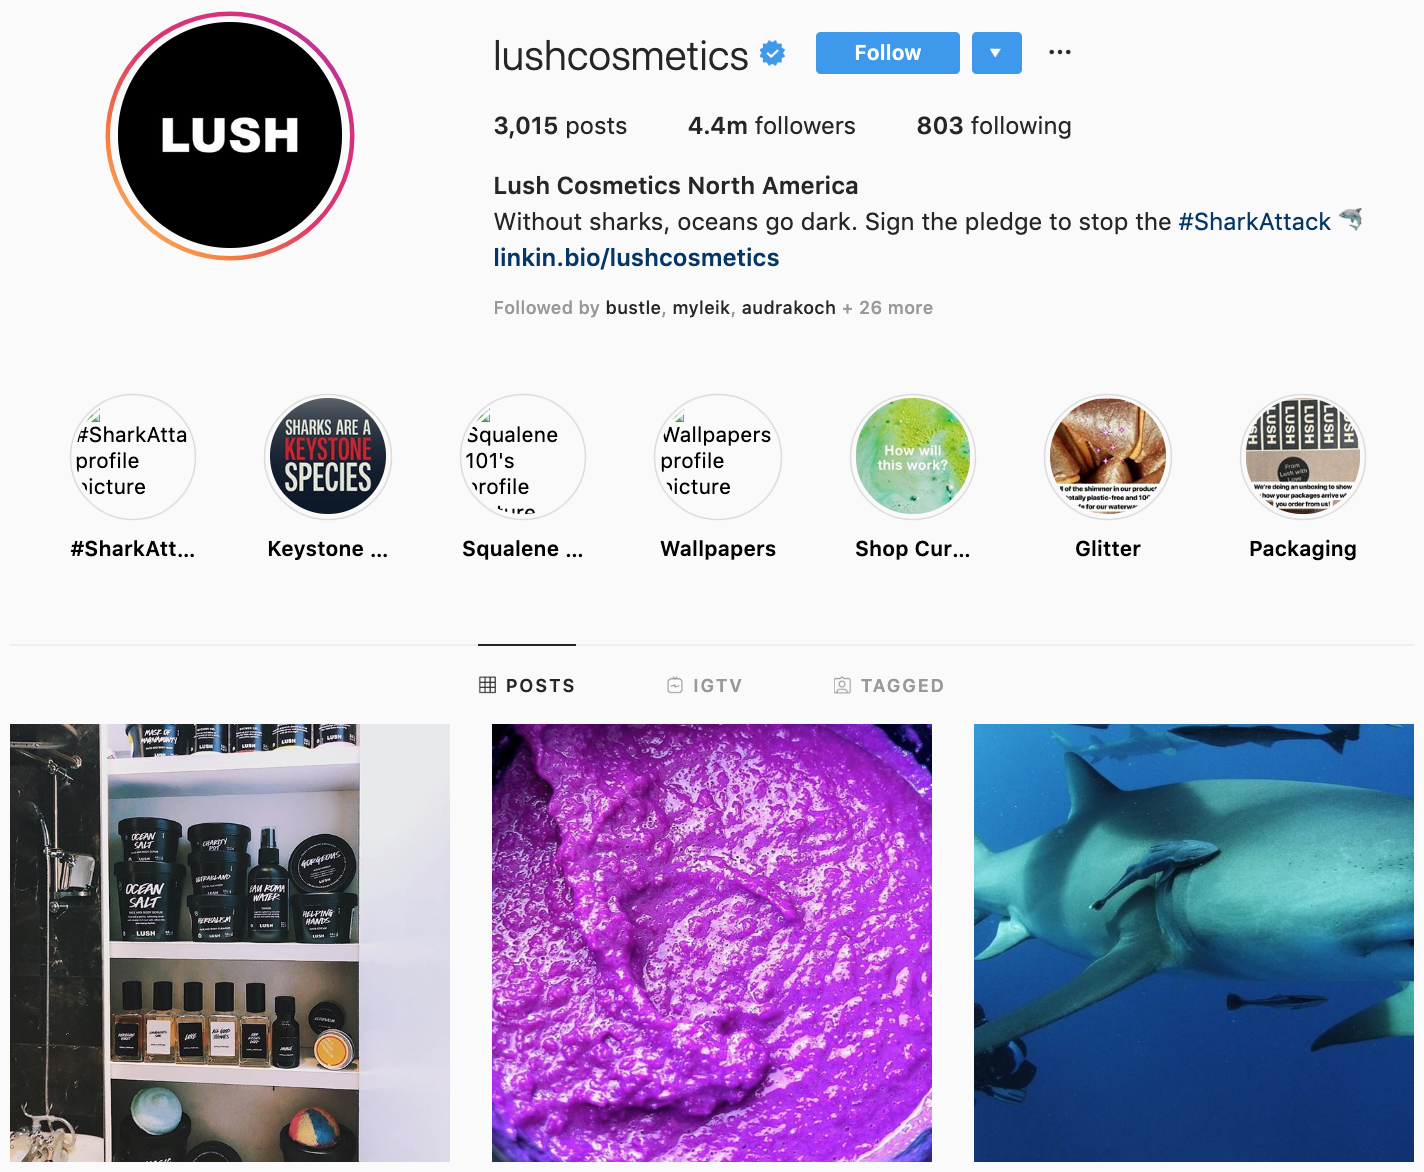 Lush on Instagram - best brands to follow